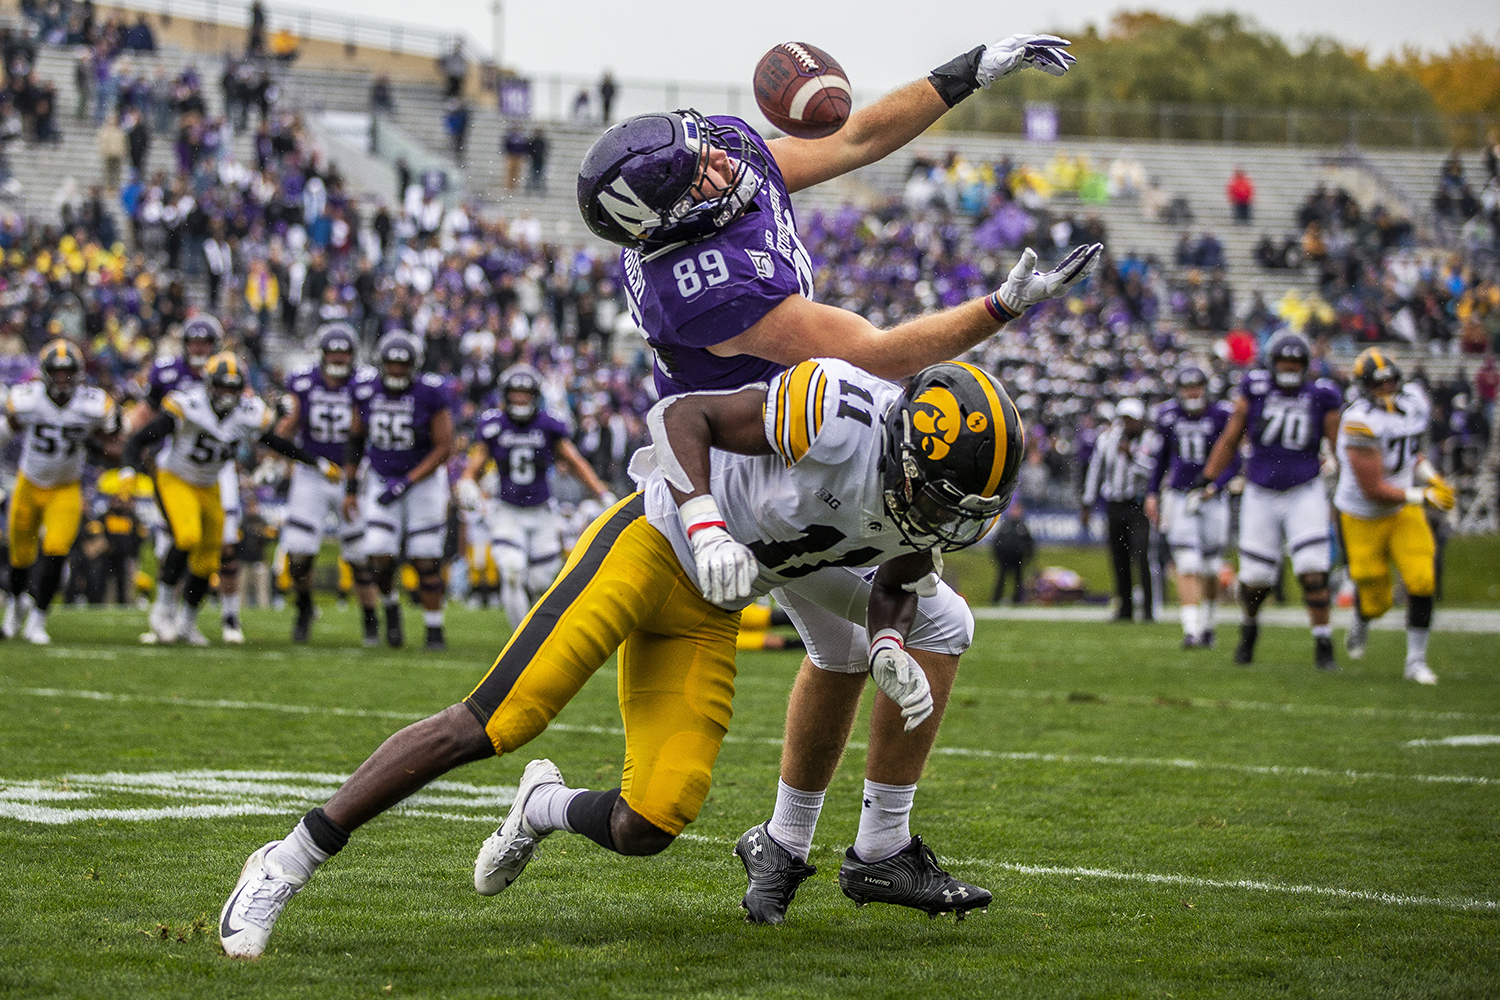 Northwestern slotback Charlie Mangieri loses the ball as Iowa defensive back Michael Ojemudia collides with him during the Iowa vs. Northwestern football game at Ryan Field on Saturday, October 26, 2019. The Hawkeyes defeated the Wildcats 20-0. Ojemudia had a total of three tackles during the game.